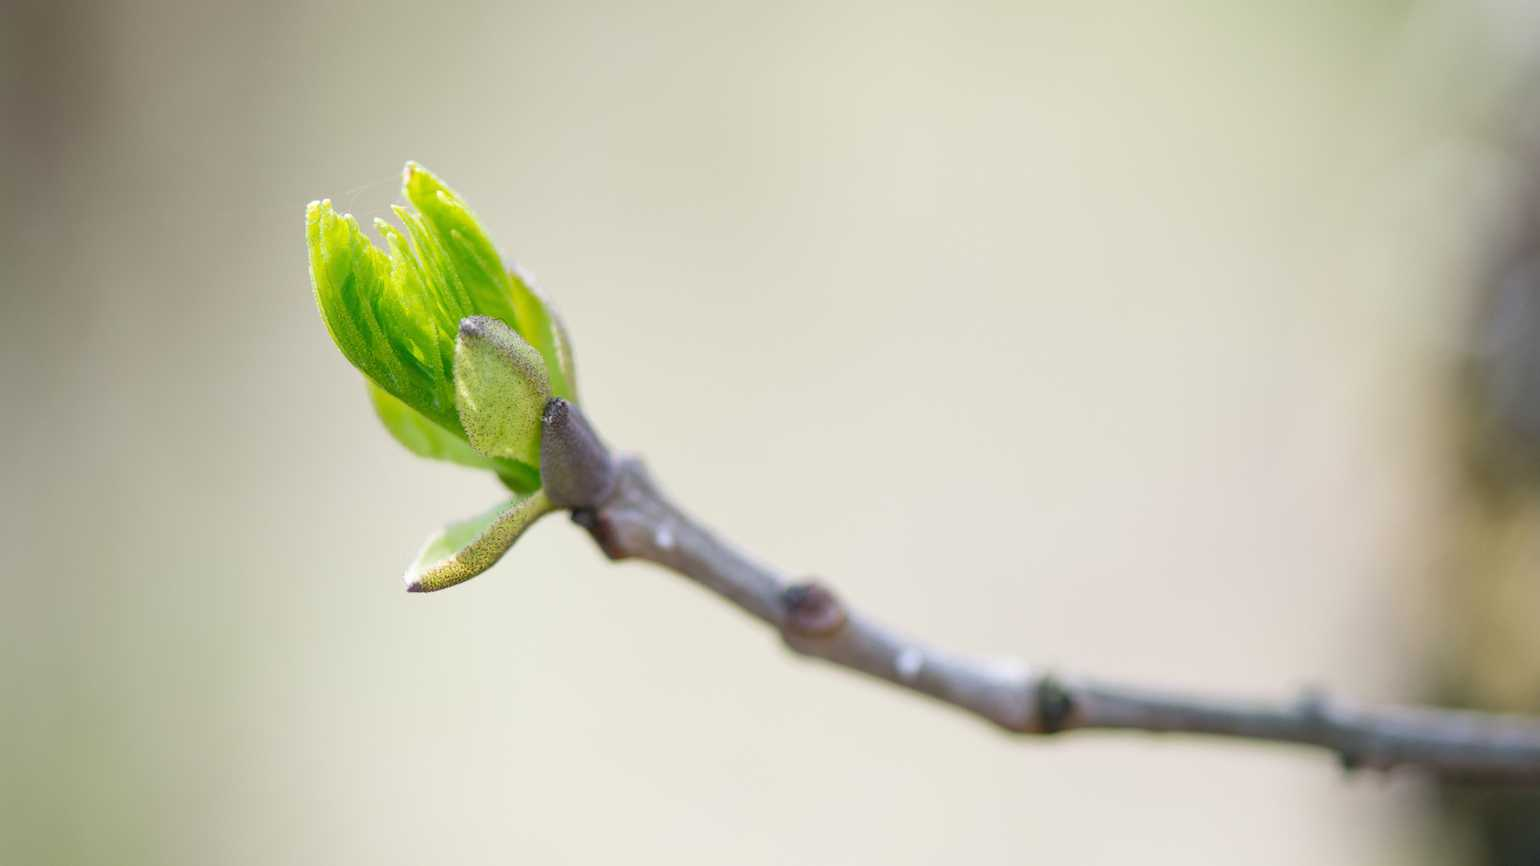 Tree in bud, promise of spring